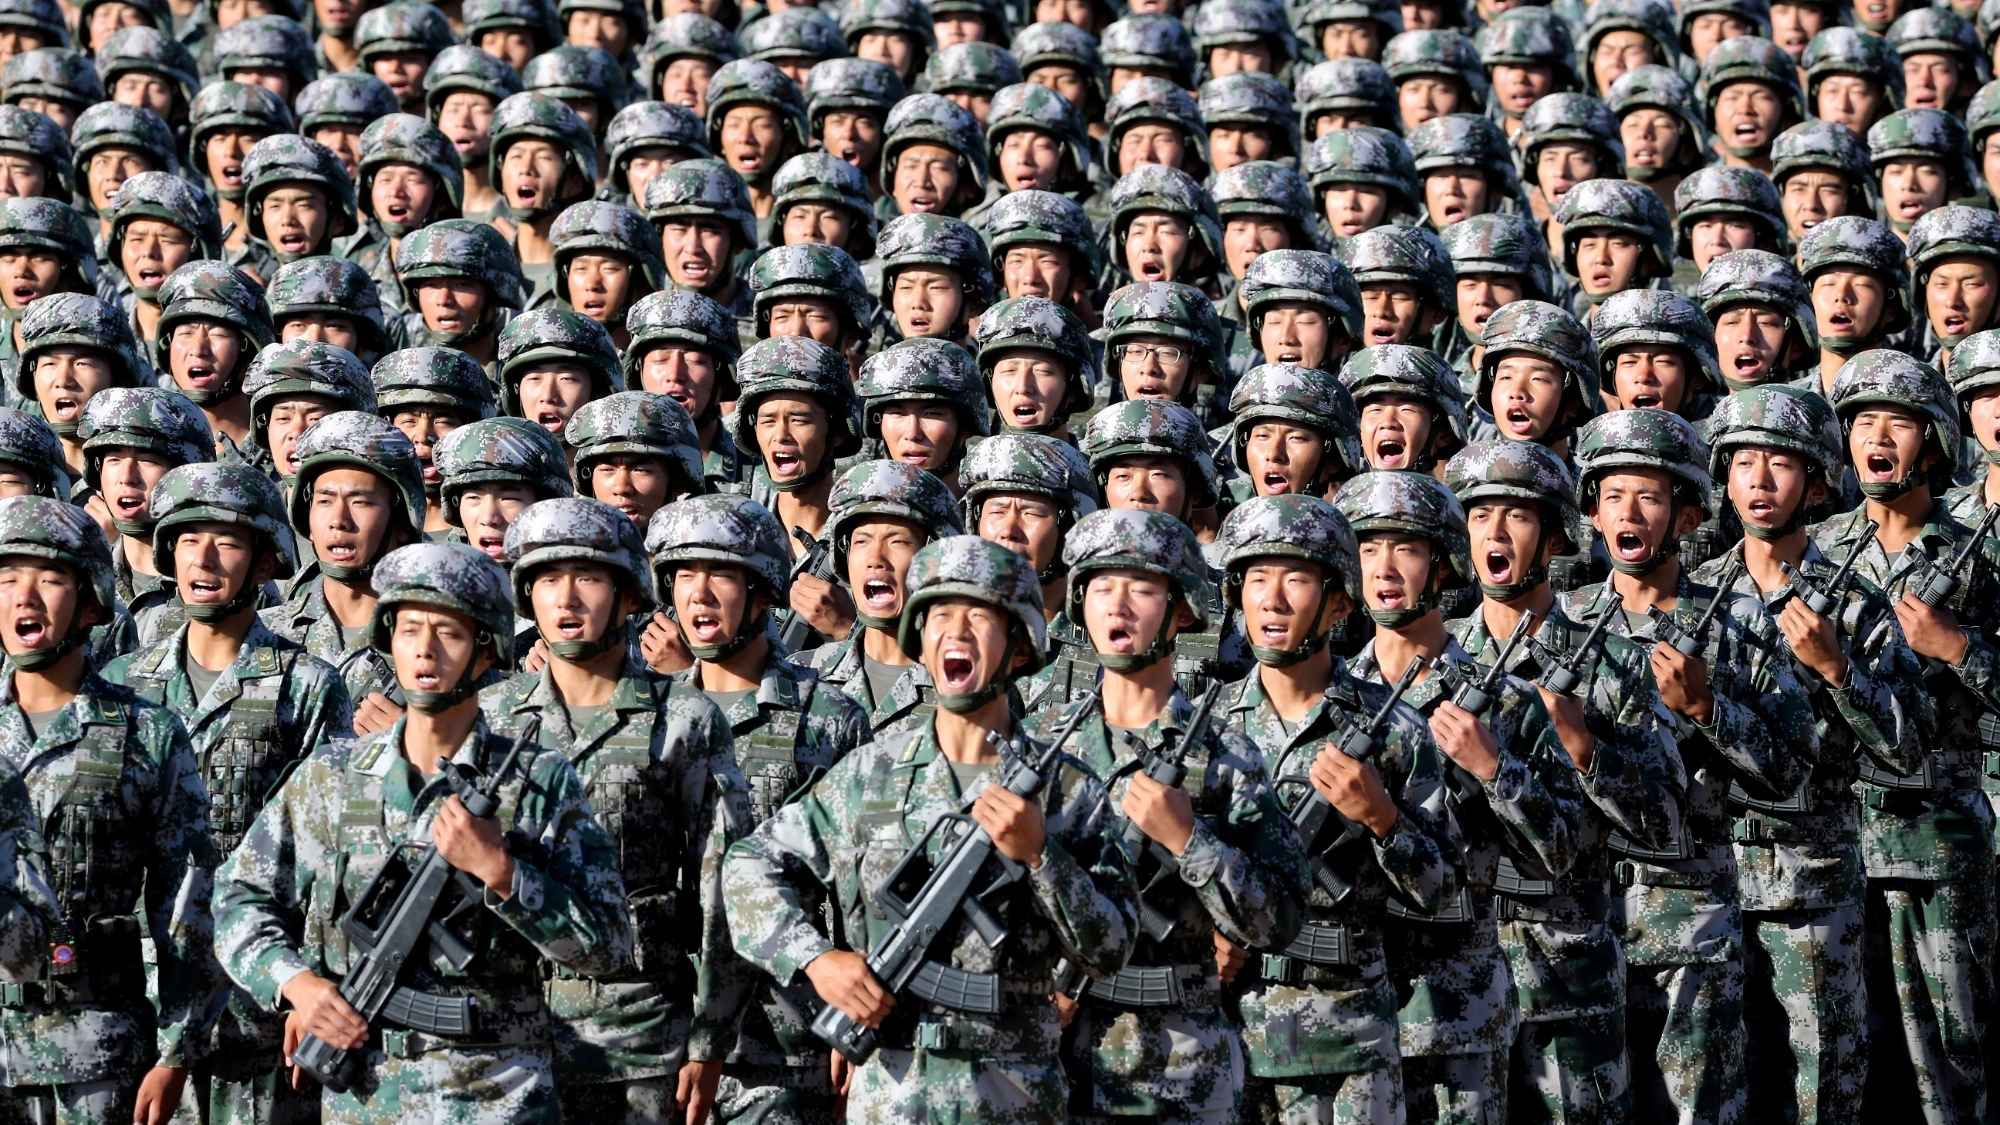 Soldiers of China's People's Liberation Army at Zhurihe military training base in Inner Mongolia Autonomous Region, China, July 30, 2017, photo by ChinaMil.com